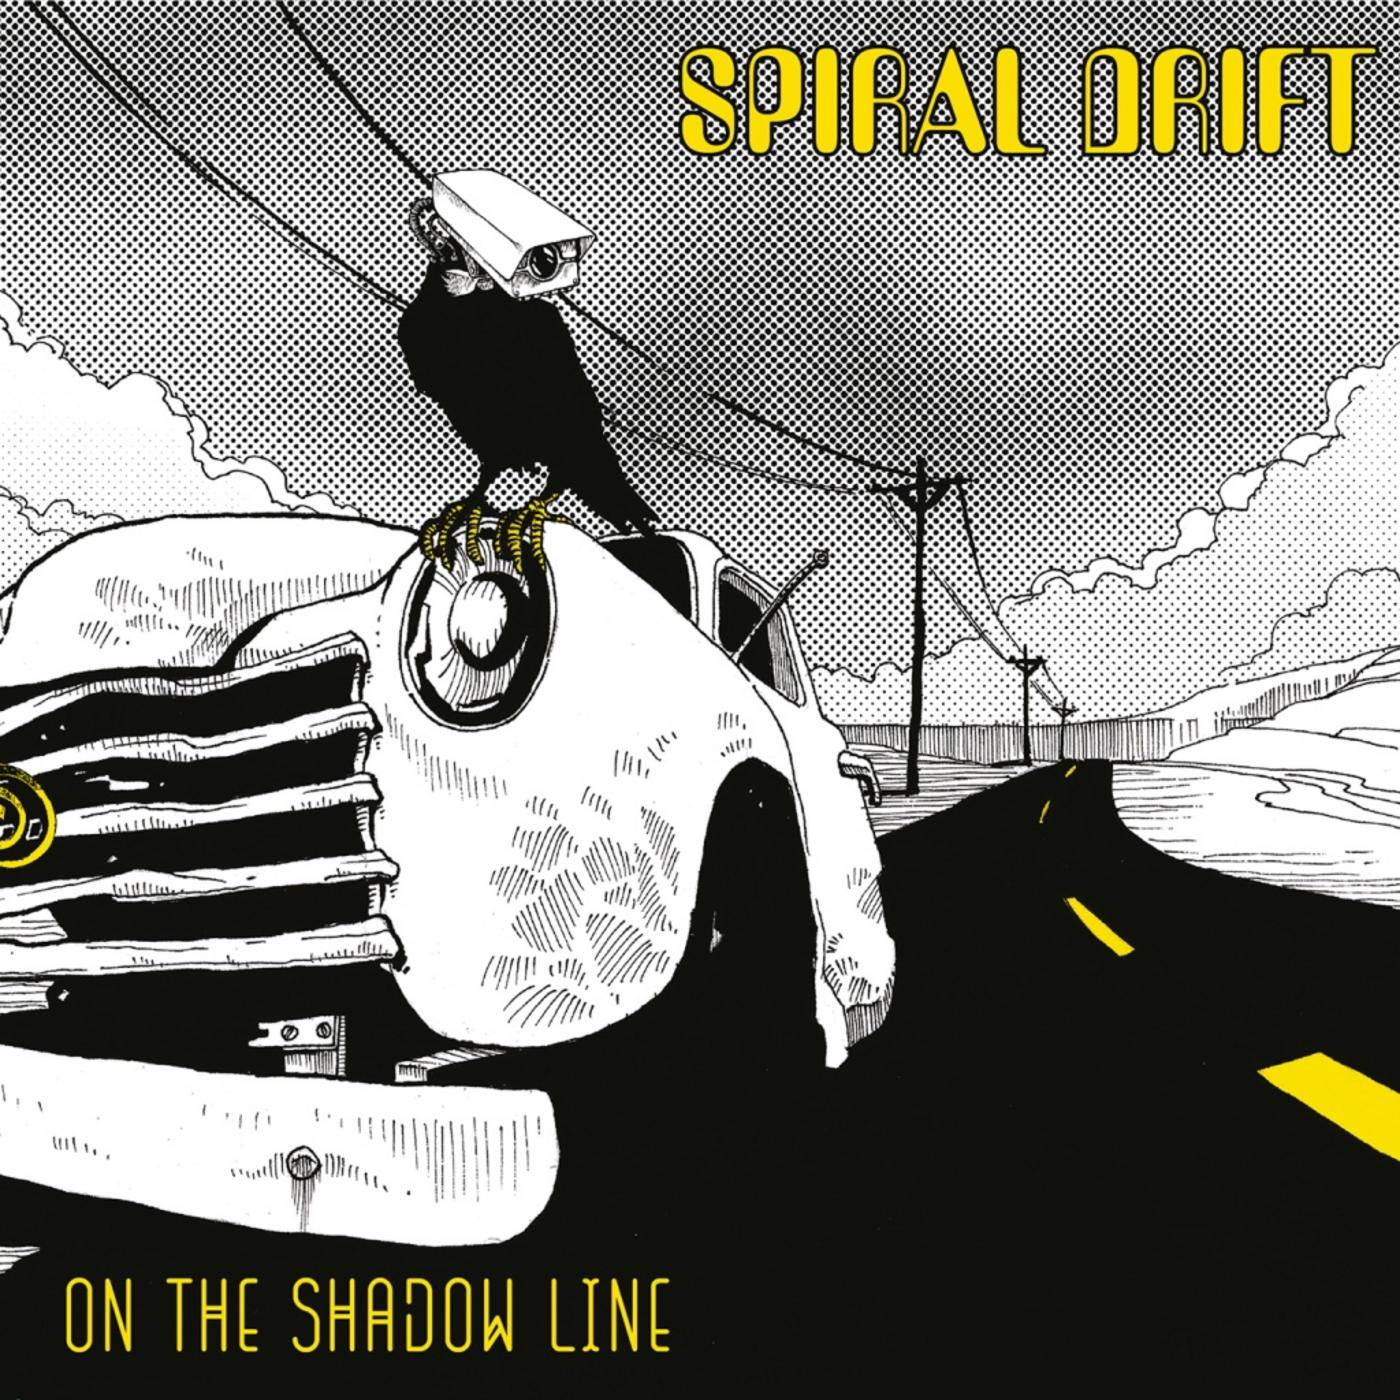 SPIRAL DRIFT - On the shadow line